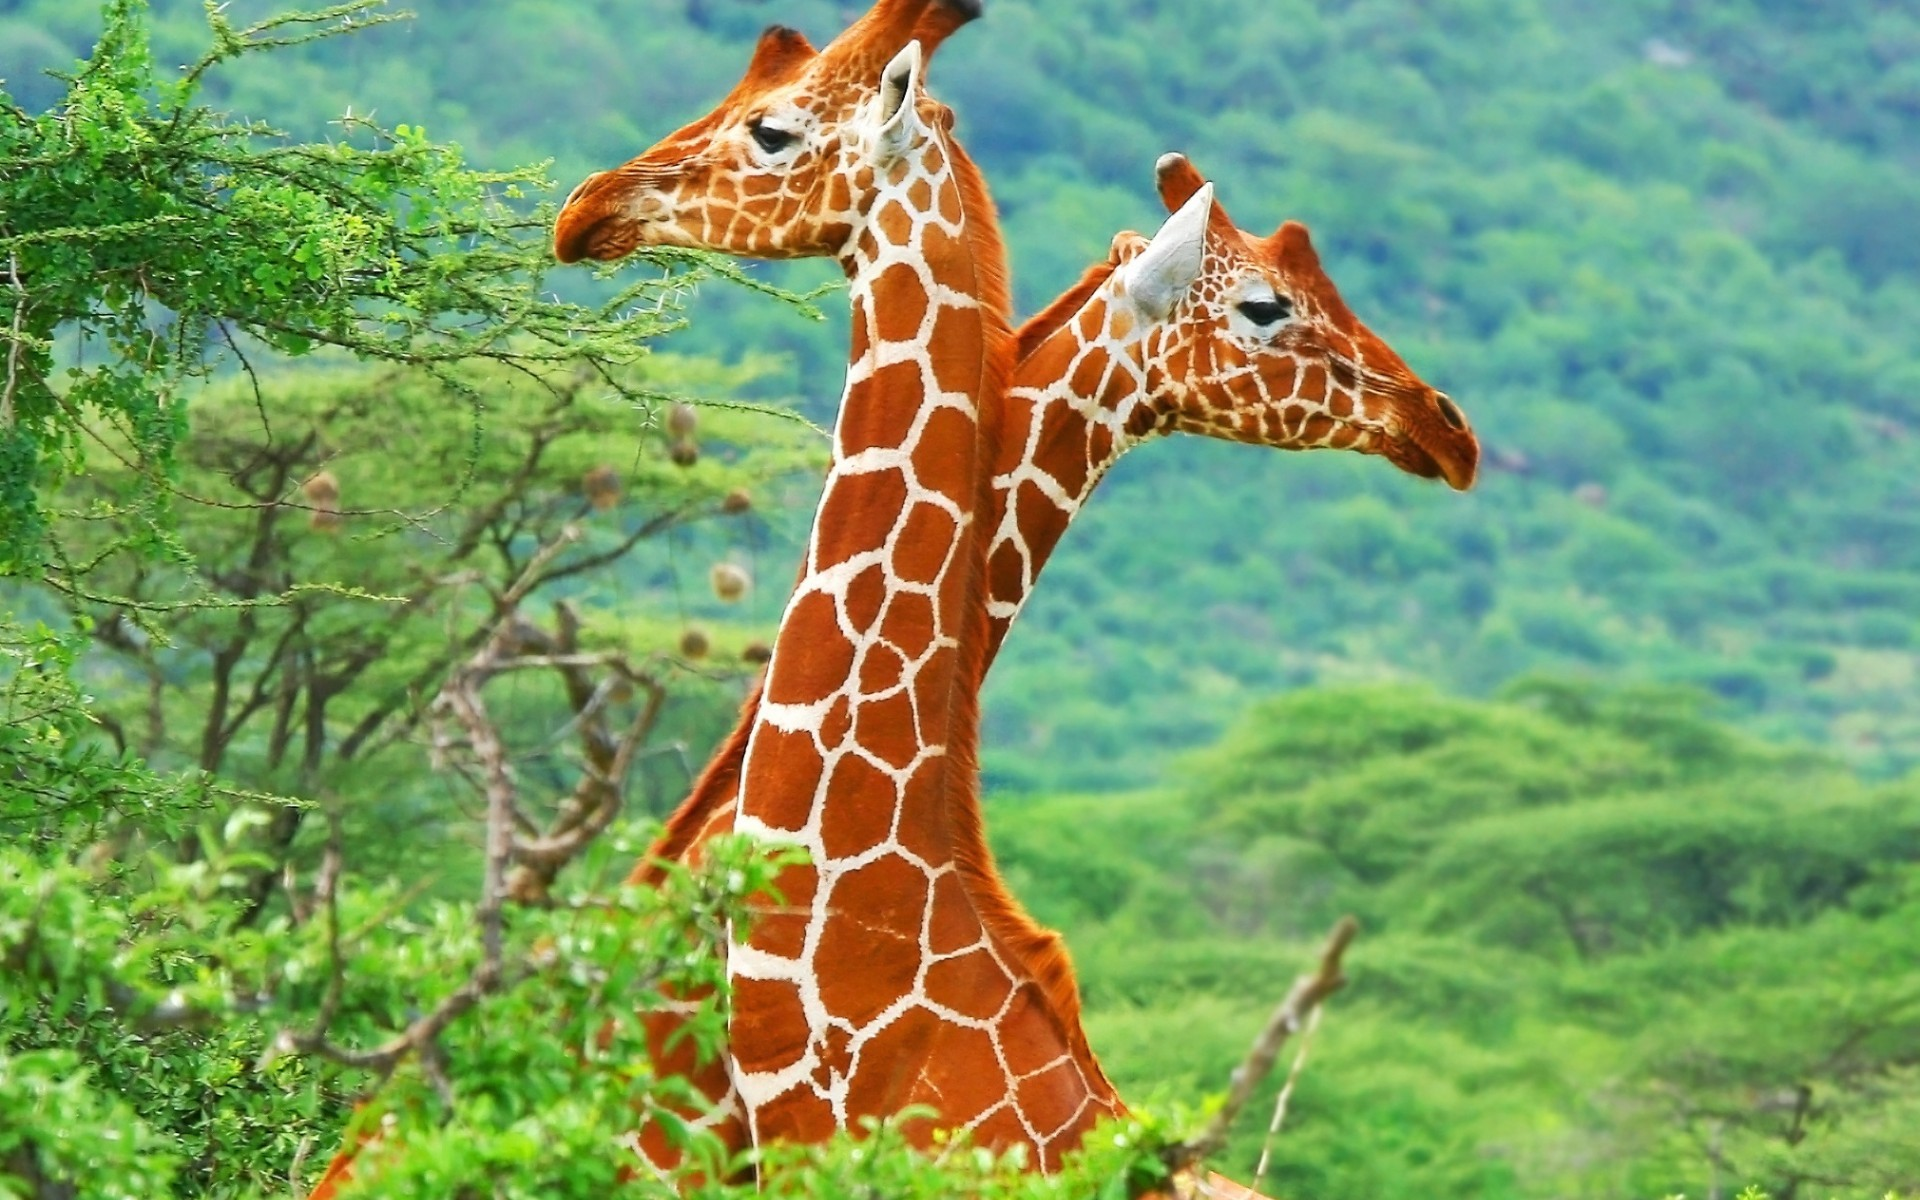 44692 download wallpaper Animals, Giraffes screensavers and pictures for free